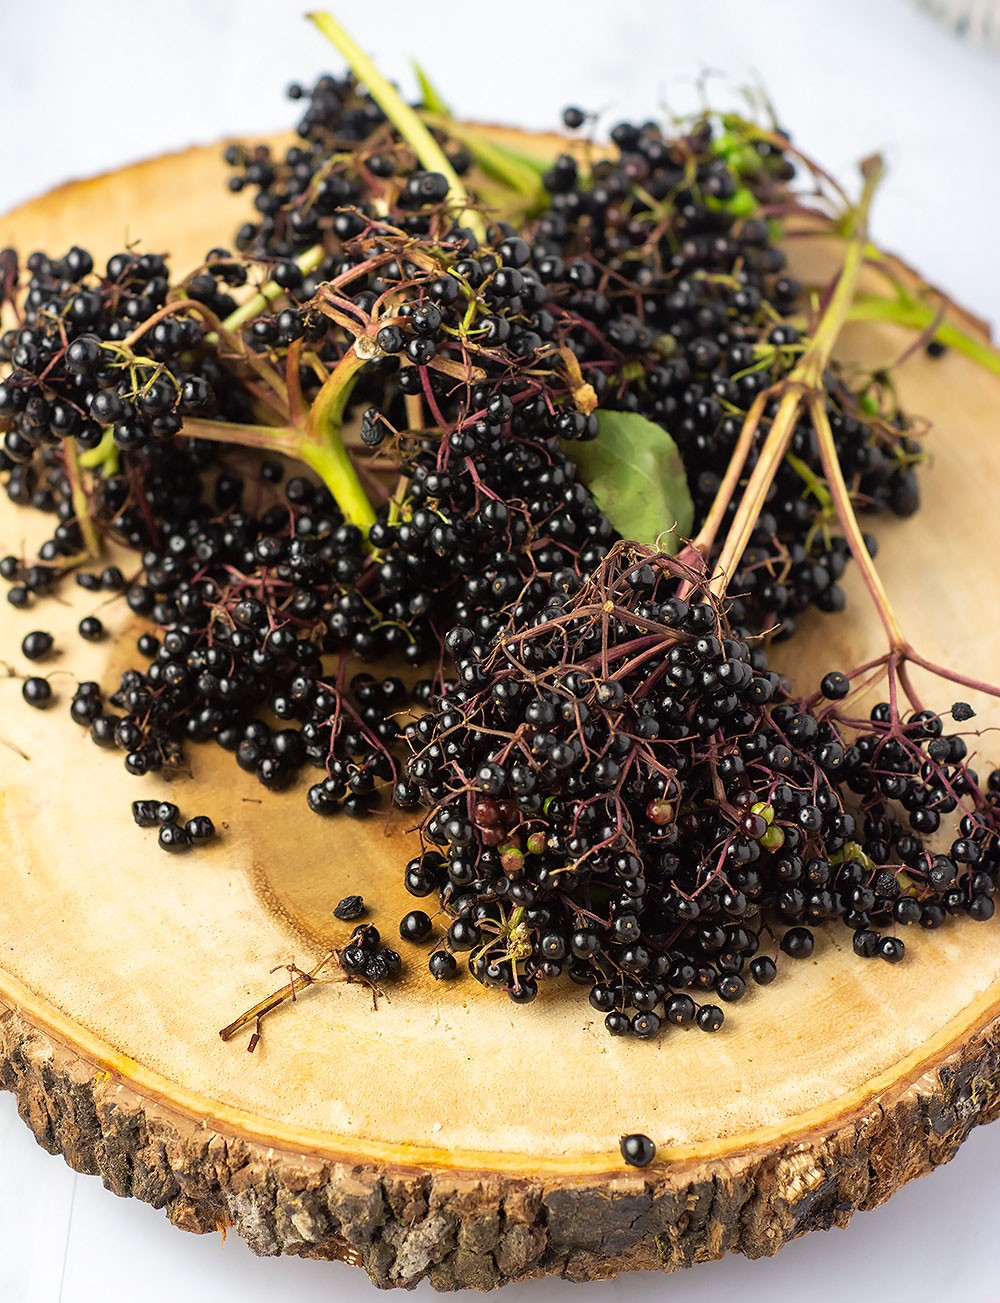 Elderberries for making elderberry syrup on a wooden cutting board with stems and leaves